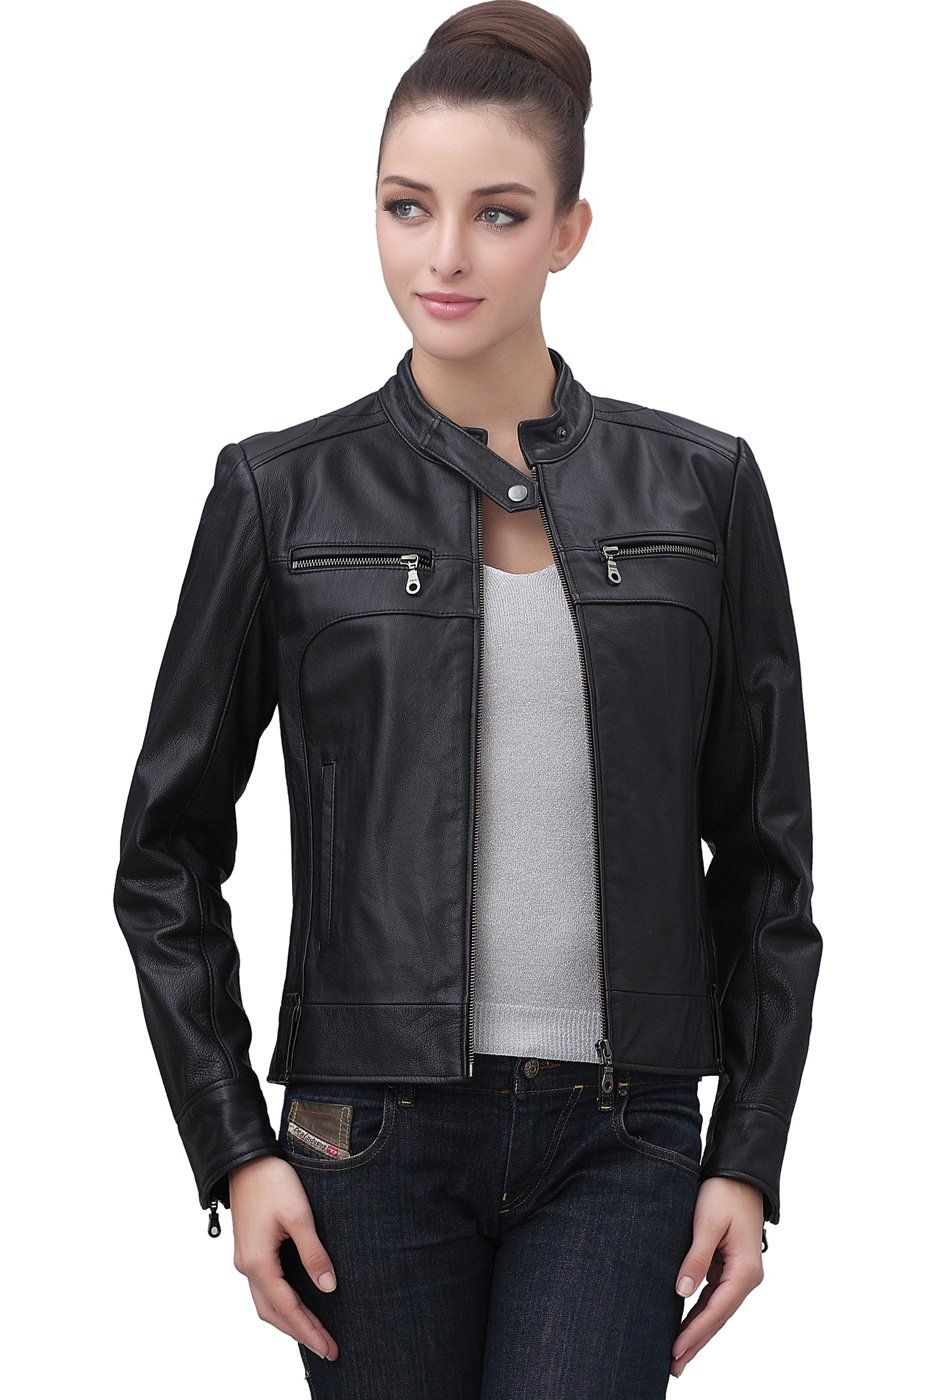 Cruzer Women's Classic Cowhide Leather Motorcycle Jacket